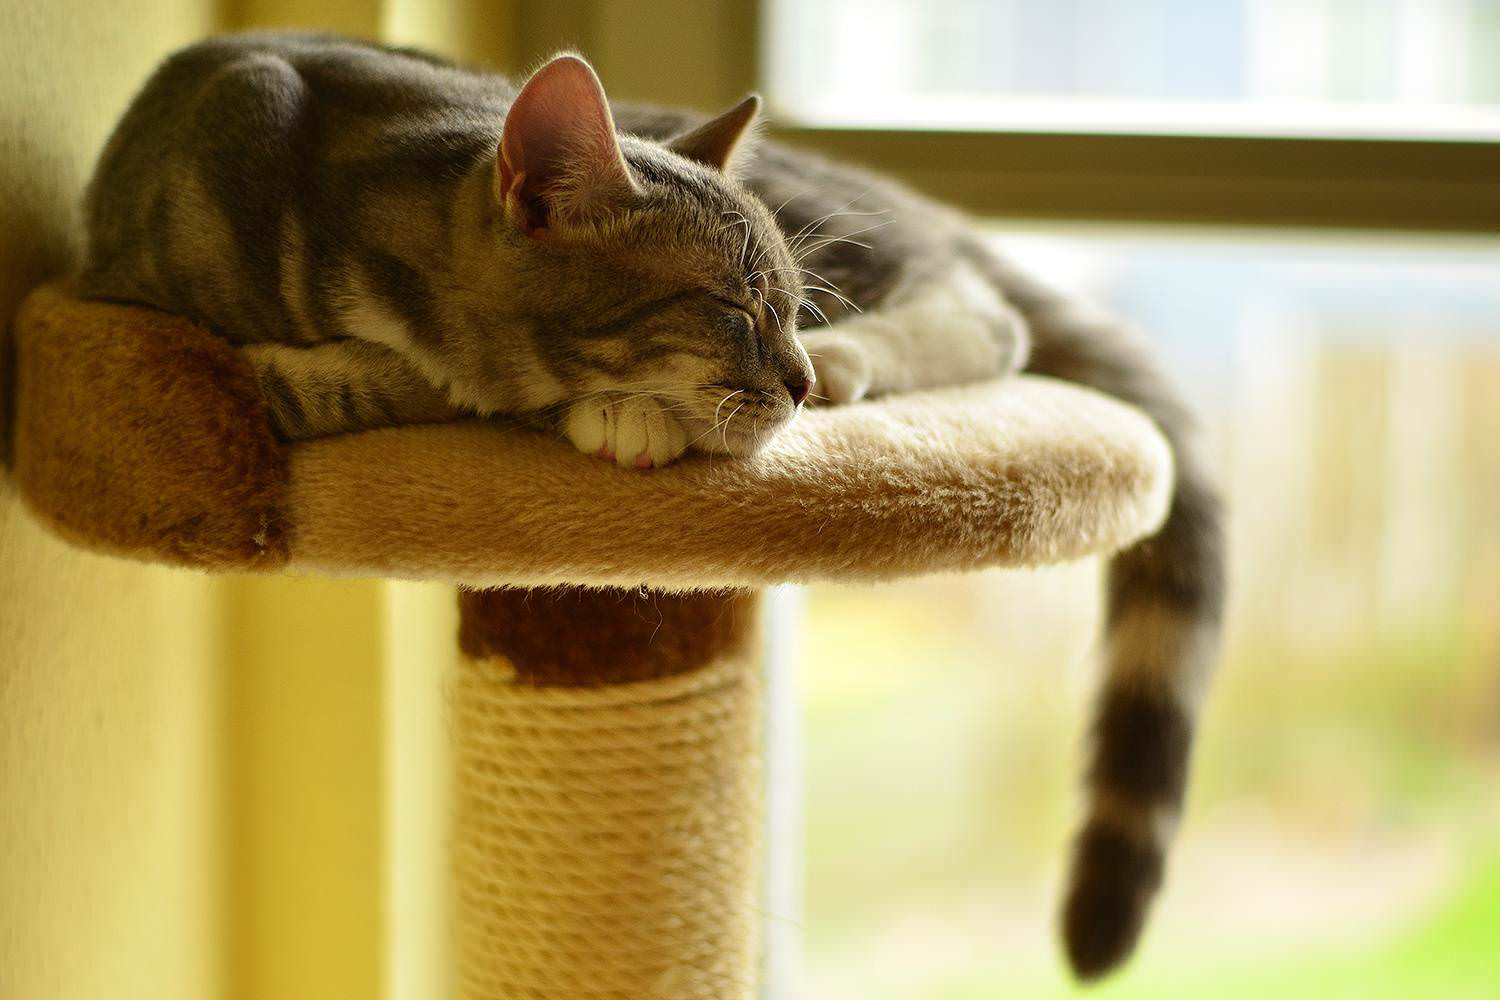 Cats scratching: how to avoid unpleasant surprises